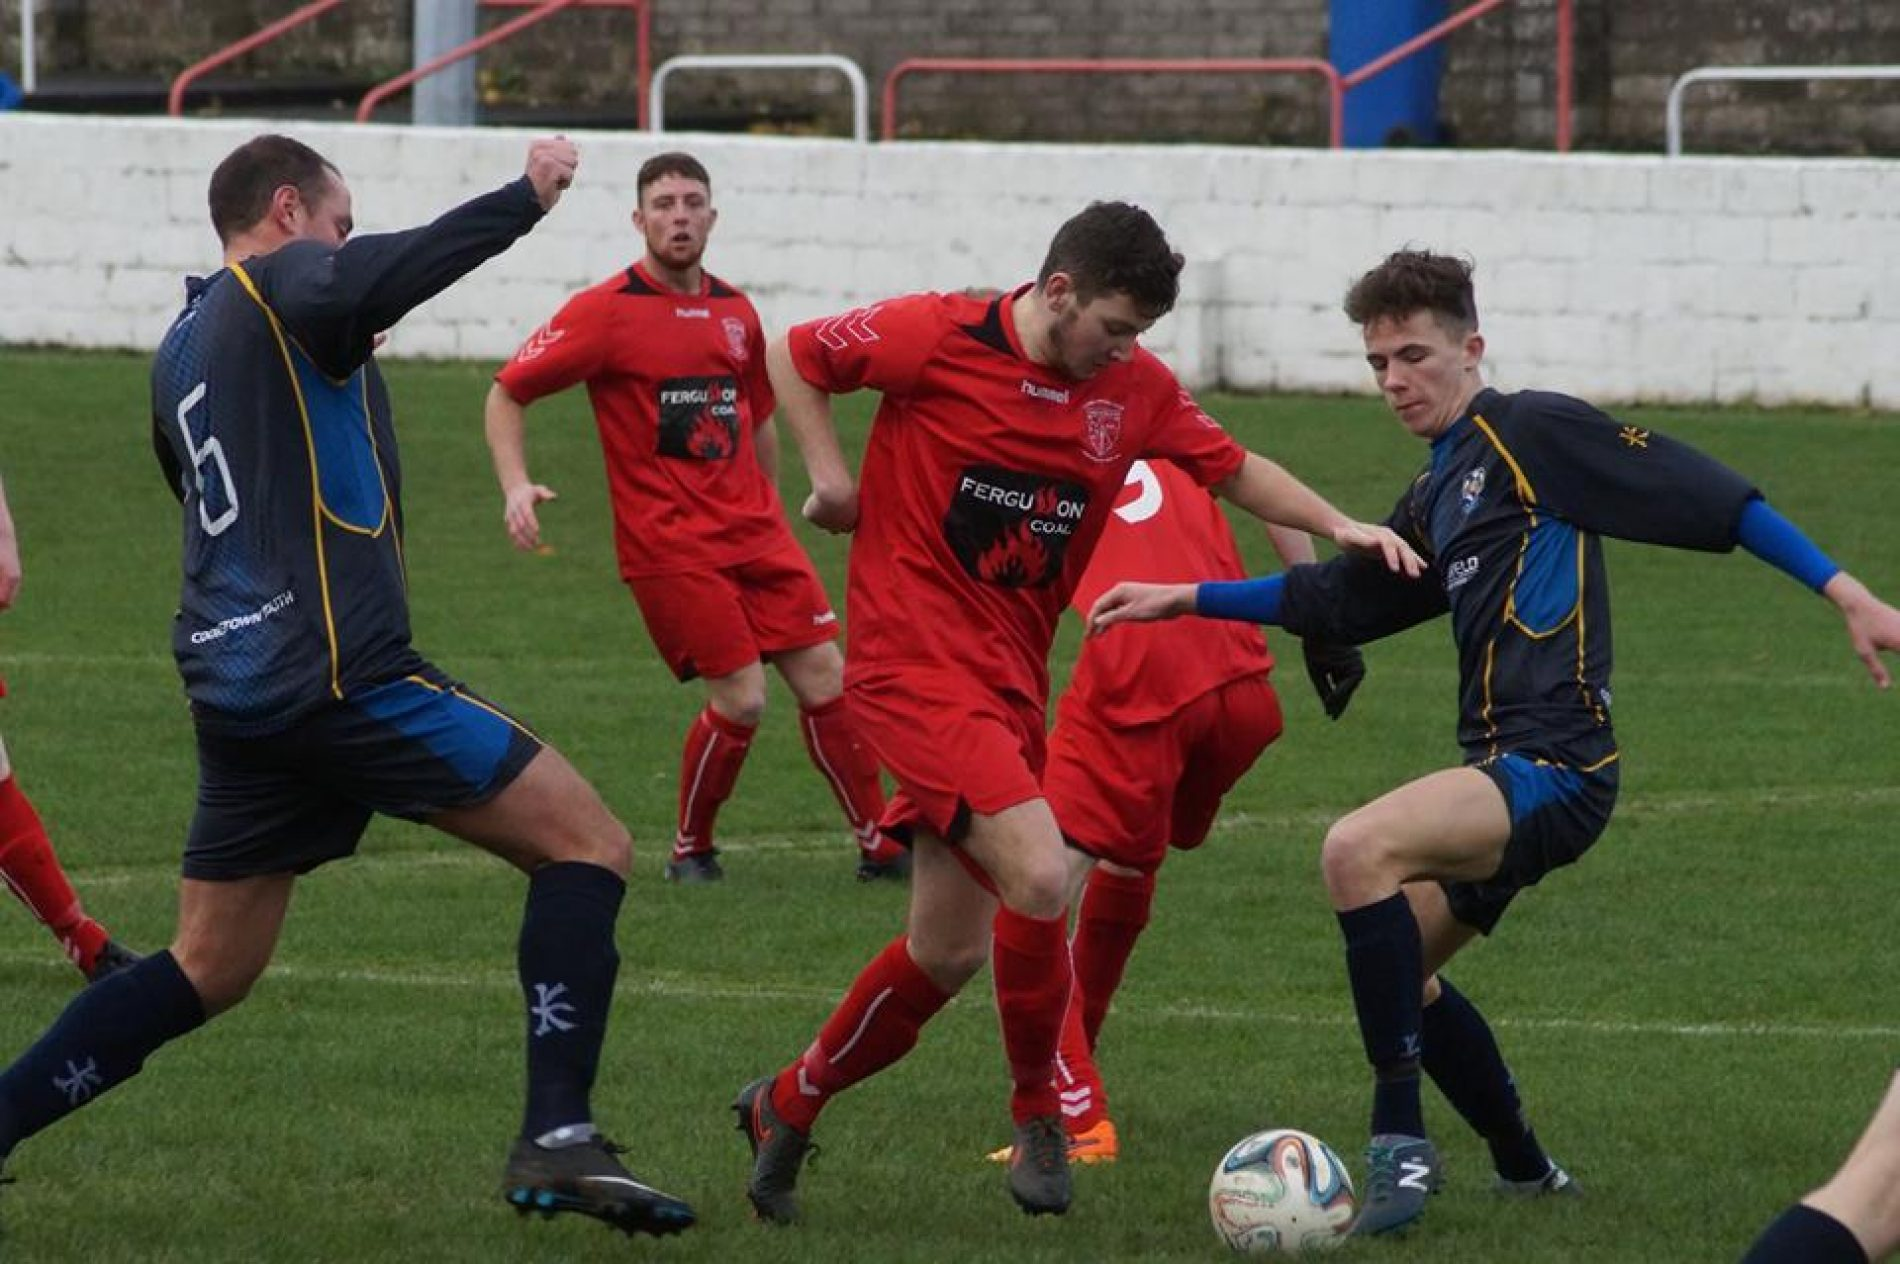 Match Reports From Friday 20/11/15 and Sat 21/11/15